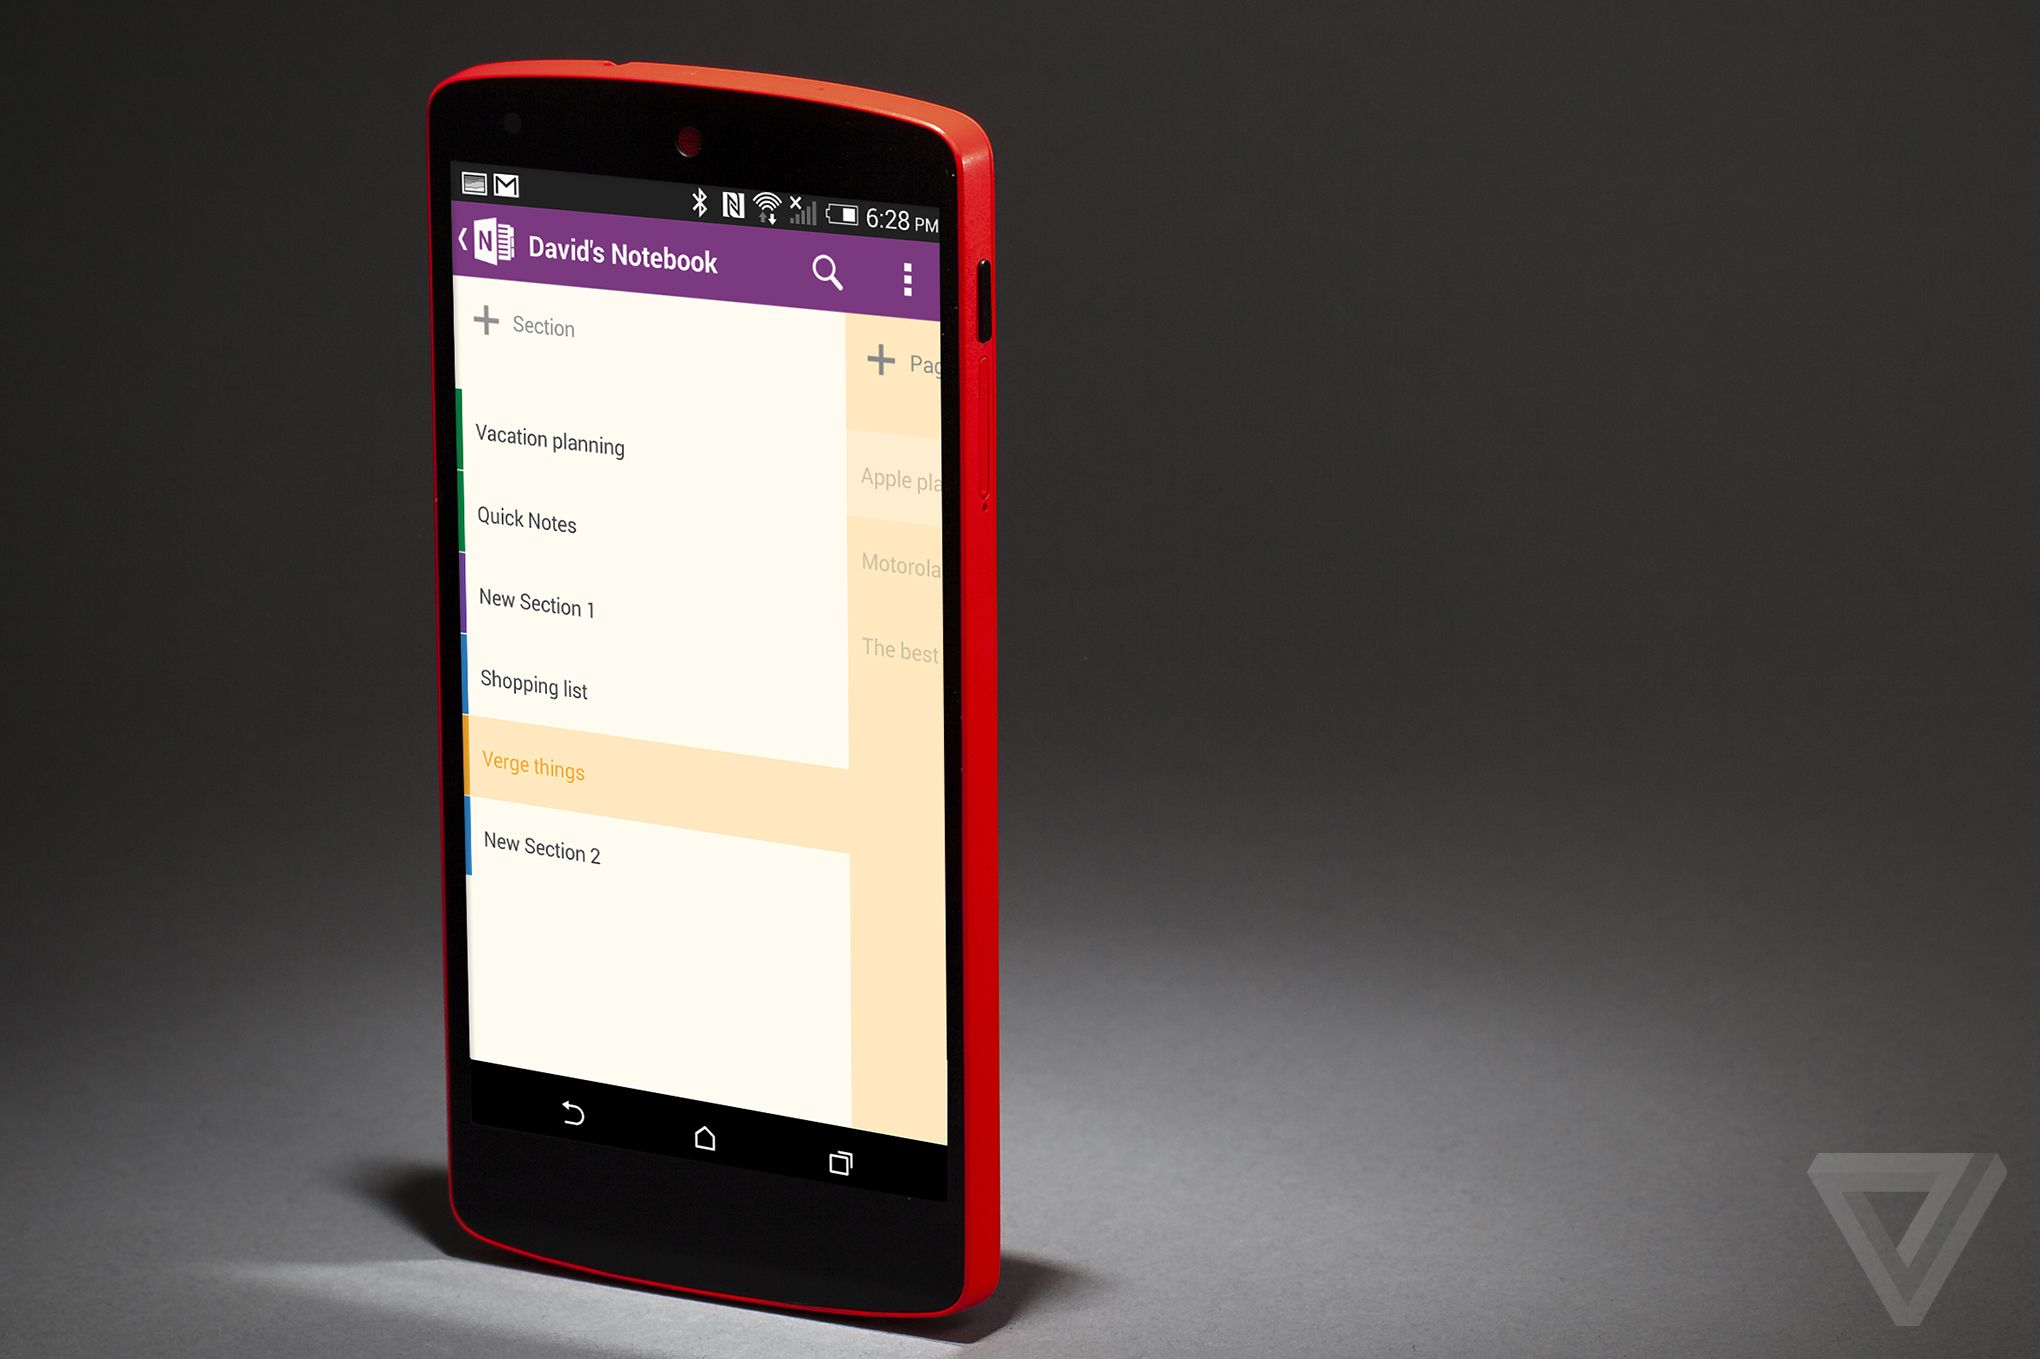 Phone Notebook App For Android Phone the best note taking app for android verge timn apps onenote